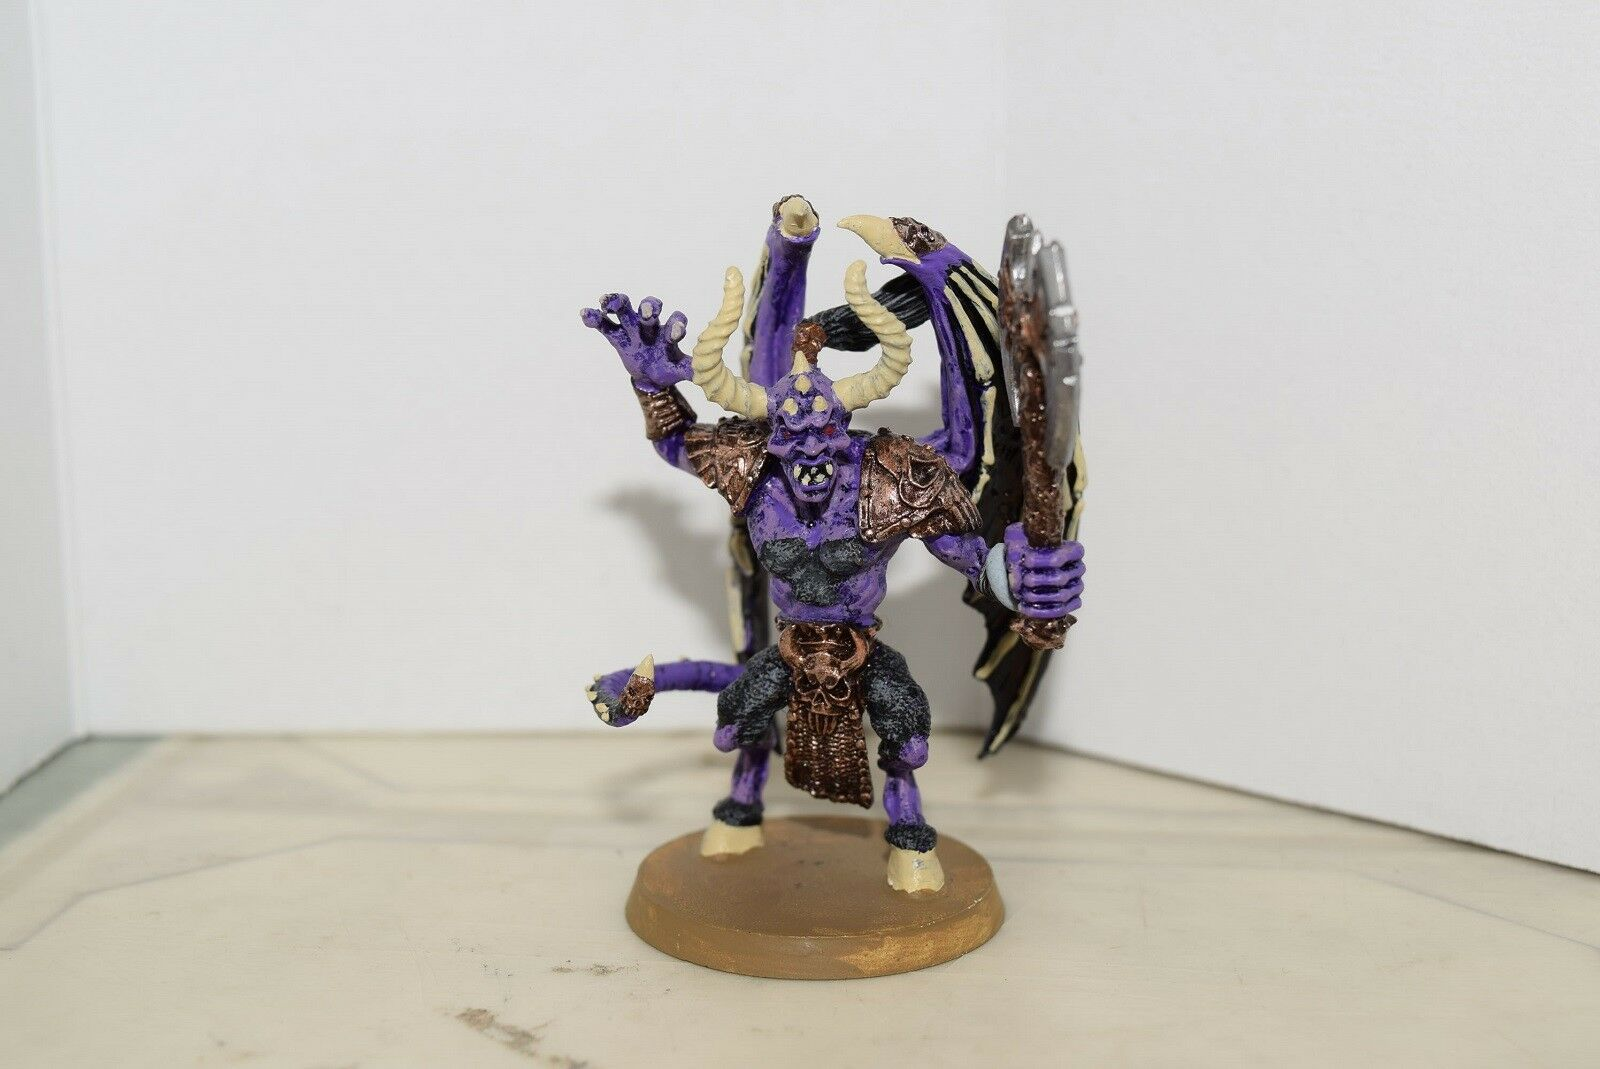 Warhammer Chaos Daemon Prince with Wings & Axe (OOP, 40k Chaos Daemon Prince)